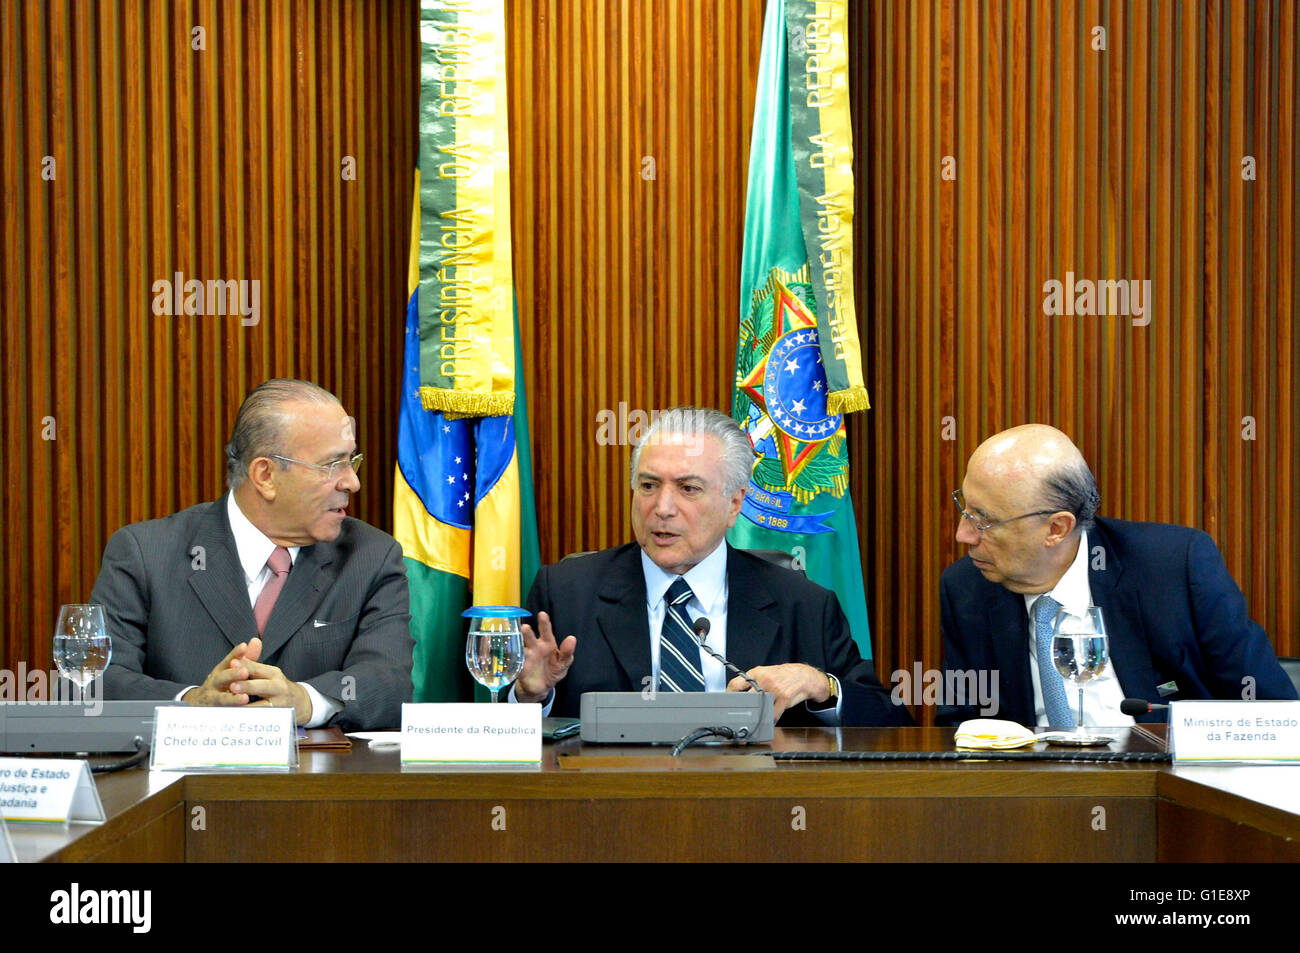 Brasilia, Brazil. 13th May, 2016. Brazil's acting President Michel Temer (C) presides over his first cabinet - Stock Image